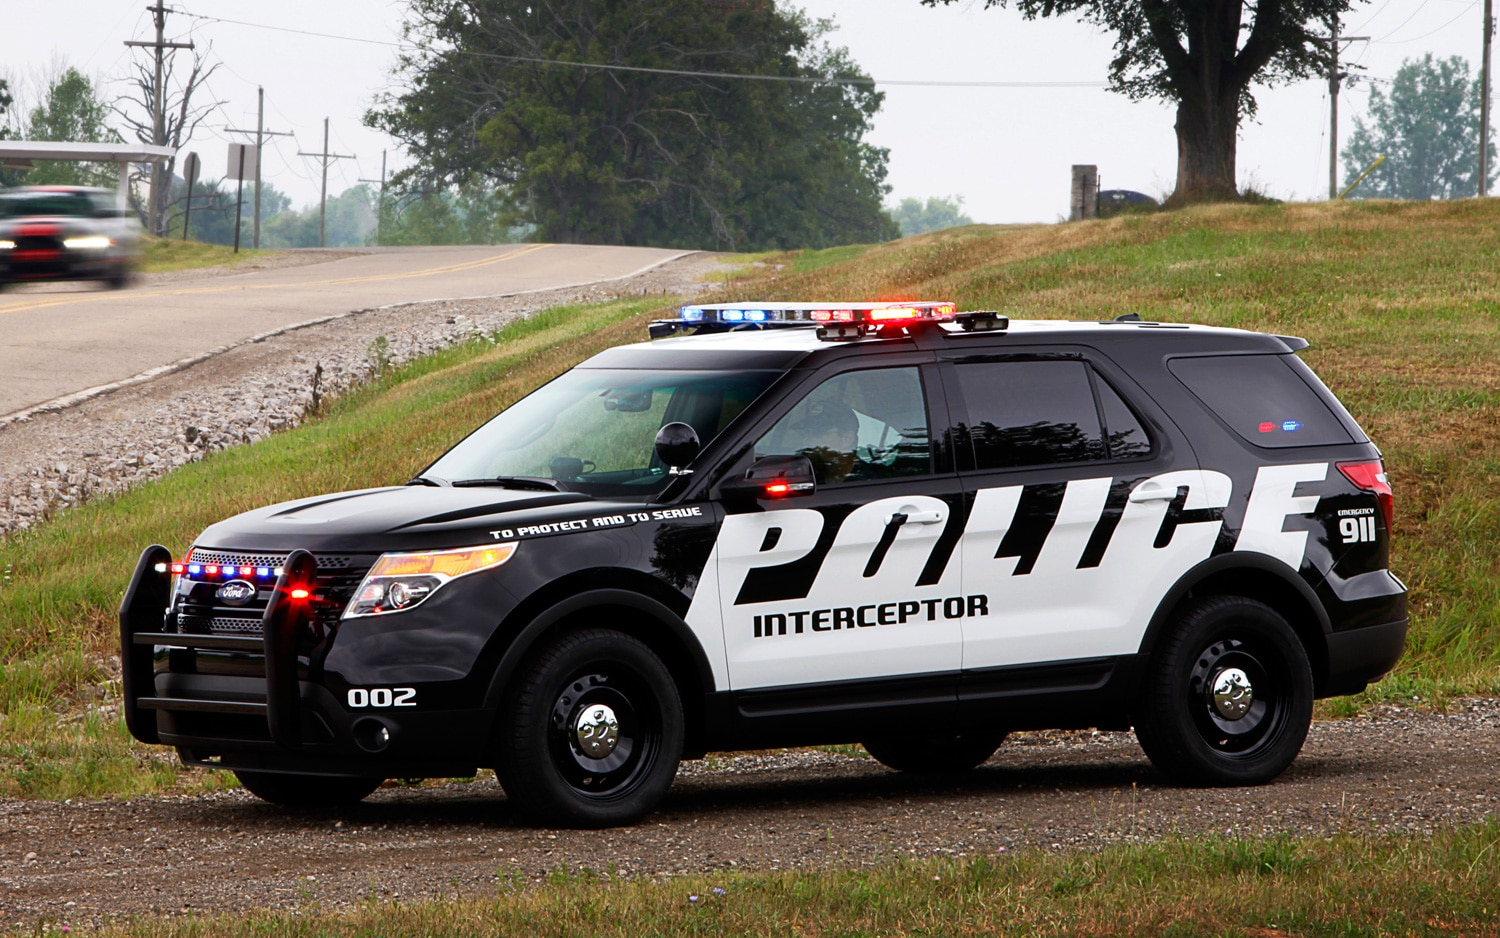 Police Forces Are Choosing Suvs Instead Of Sedans